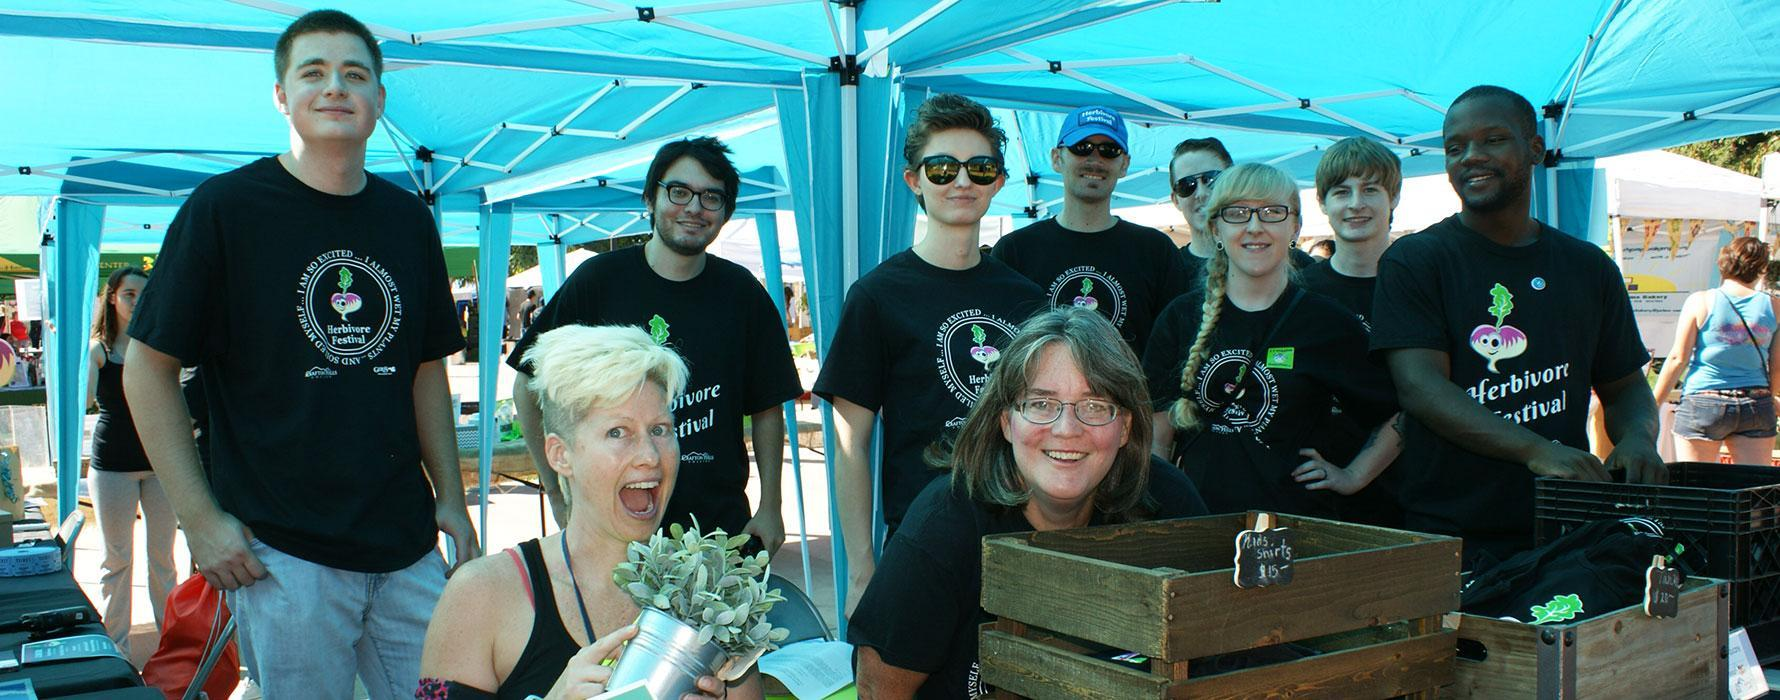 Students and faculty at Herbivore Festival